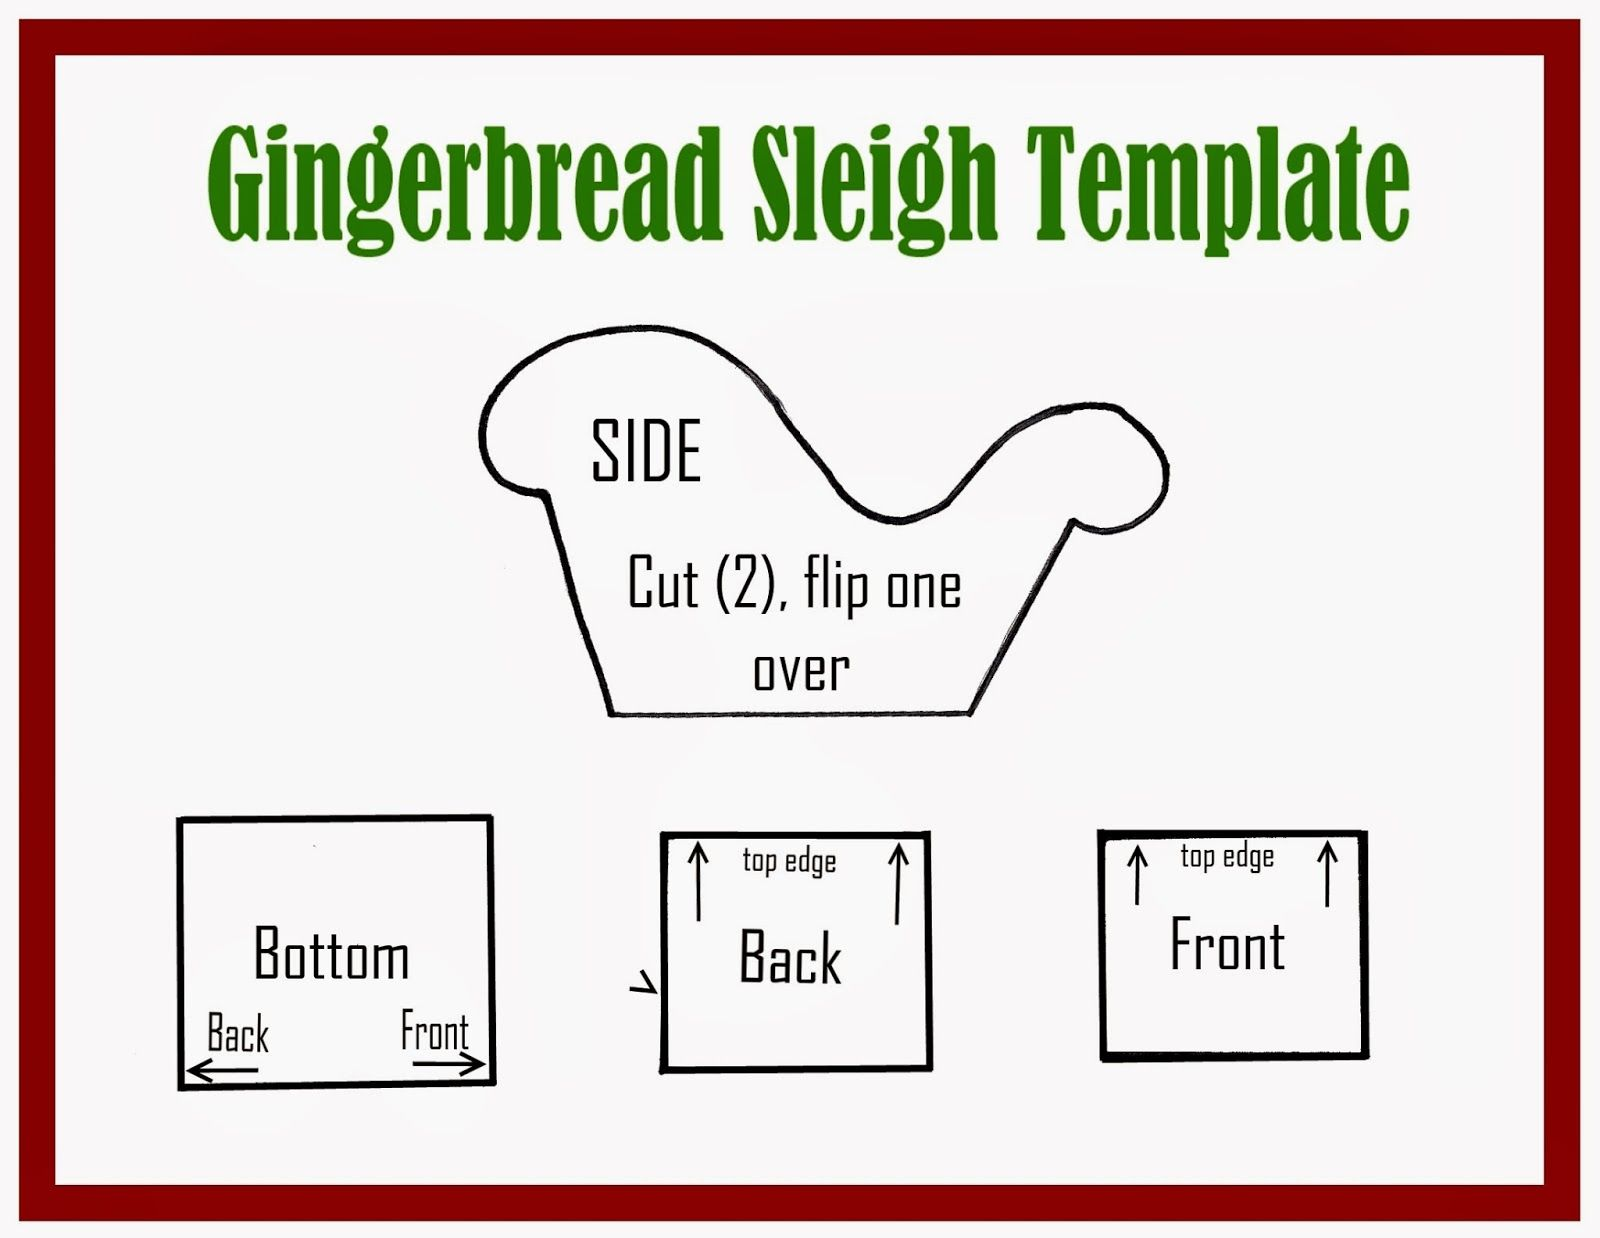 Gingerbread Sleigh Tutorial And Template